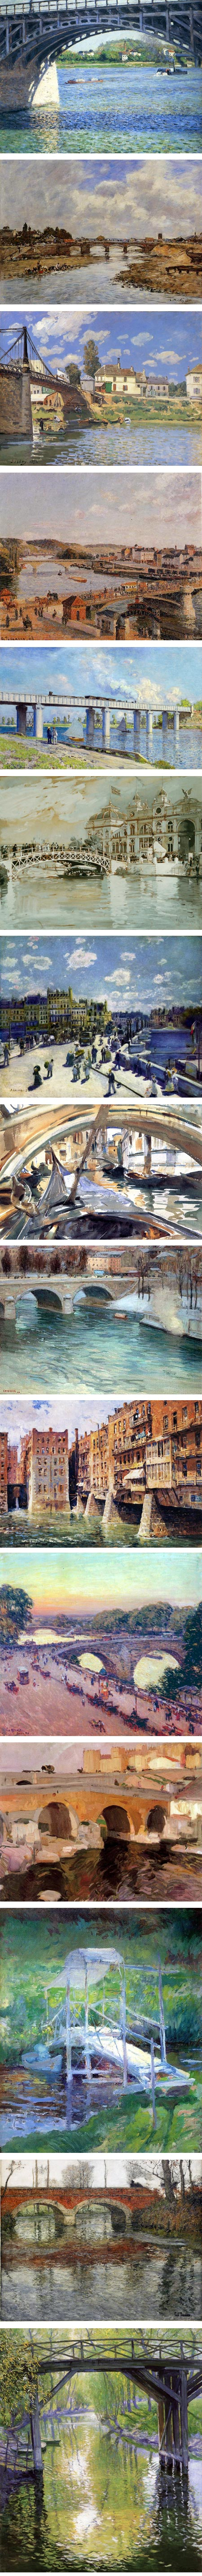 Impressionist bridges: Gustave Caillebotte, Eugene Boudin, Alfred Sisley, Camille Pissarro, Claude Monet, Childe Hassam, Pierre-Auguste Renoir, John Singer Sargent, Edward Redfield, Colin Campbell Cooper, Willard Metcalf, Joaquin Sorolla, John Twatchman, Frits Thaulow, Guy Rose